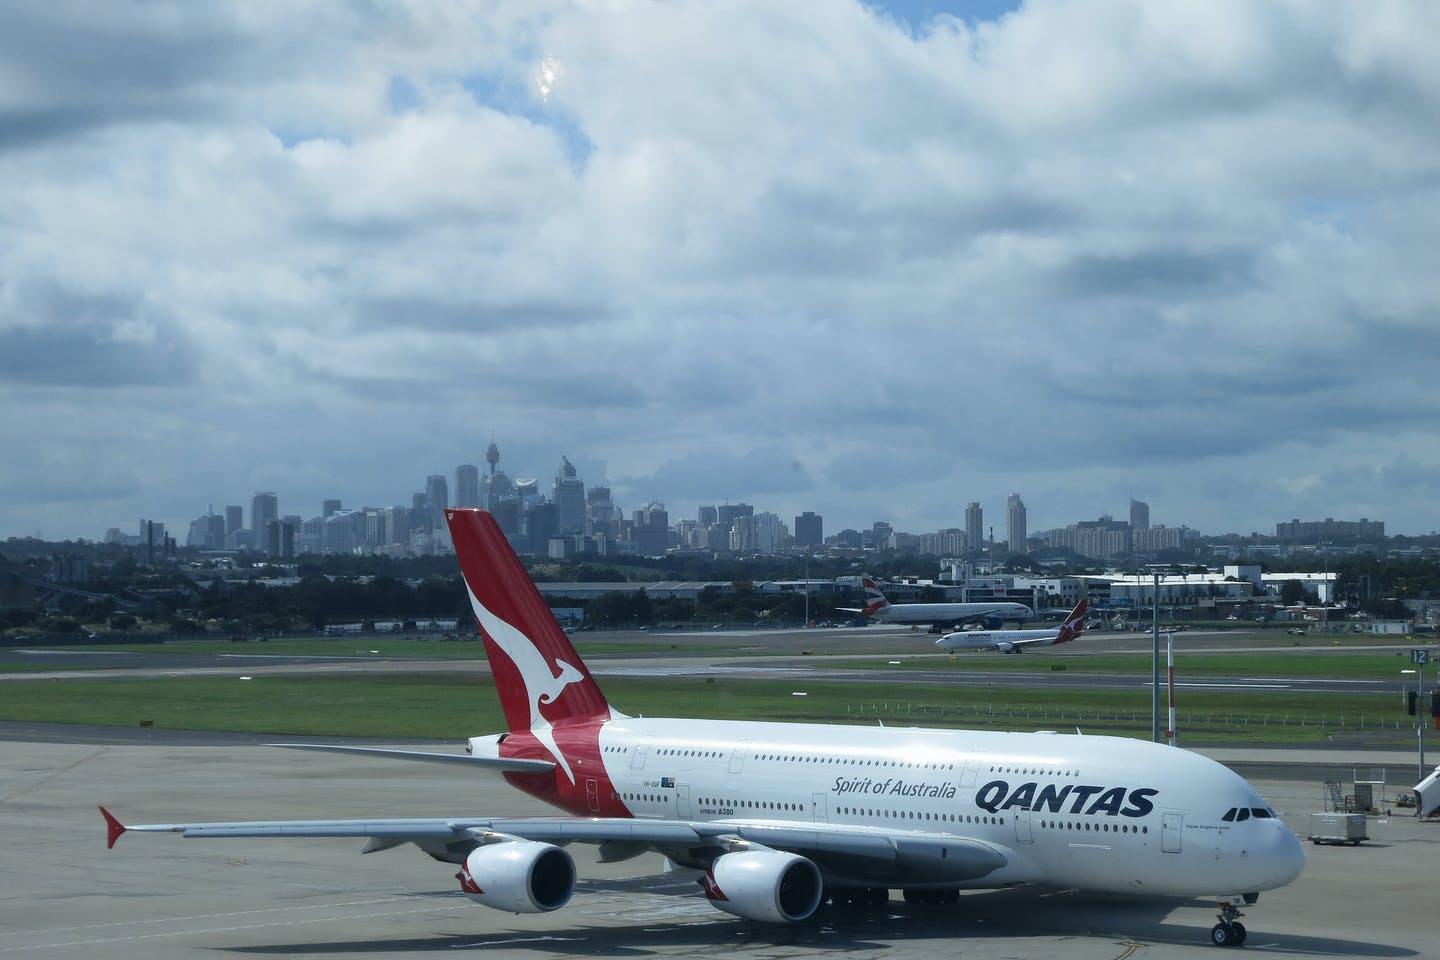 A Qantas plane on the runway at Sydney's aiport